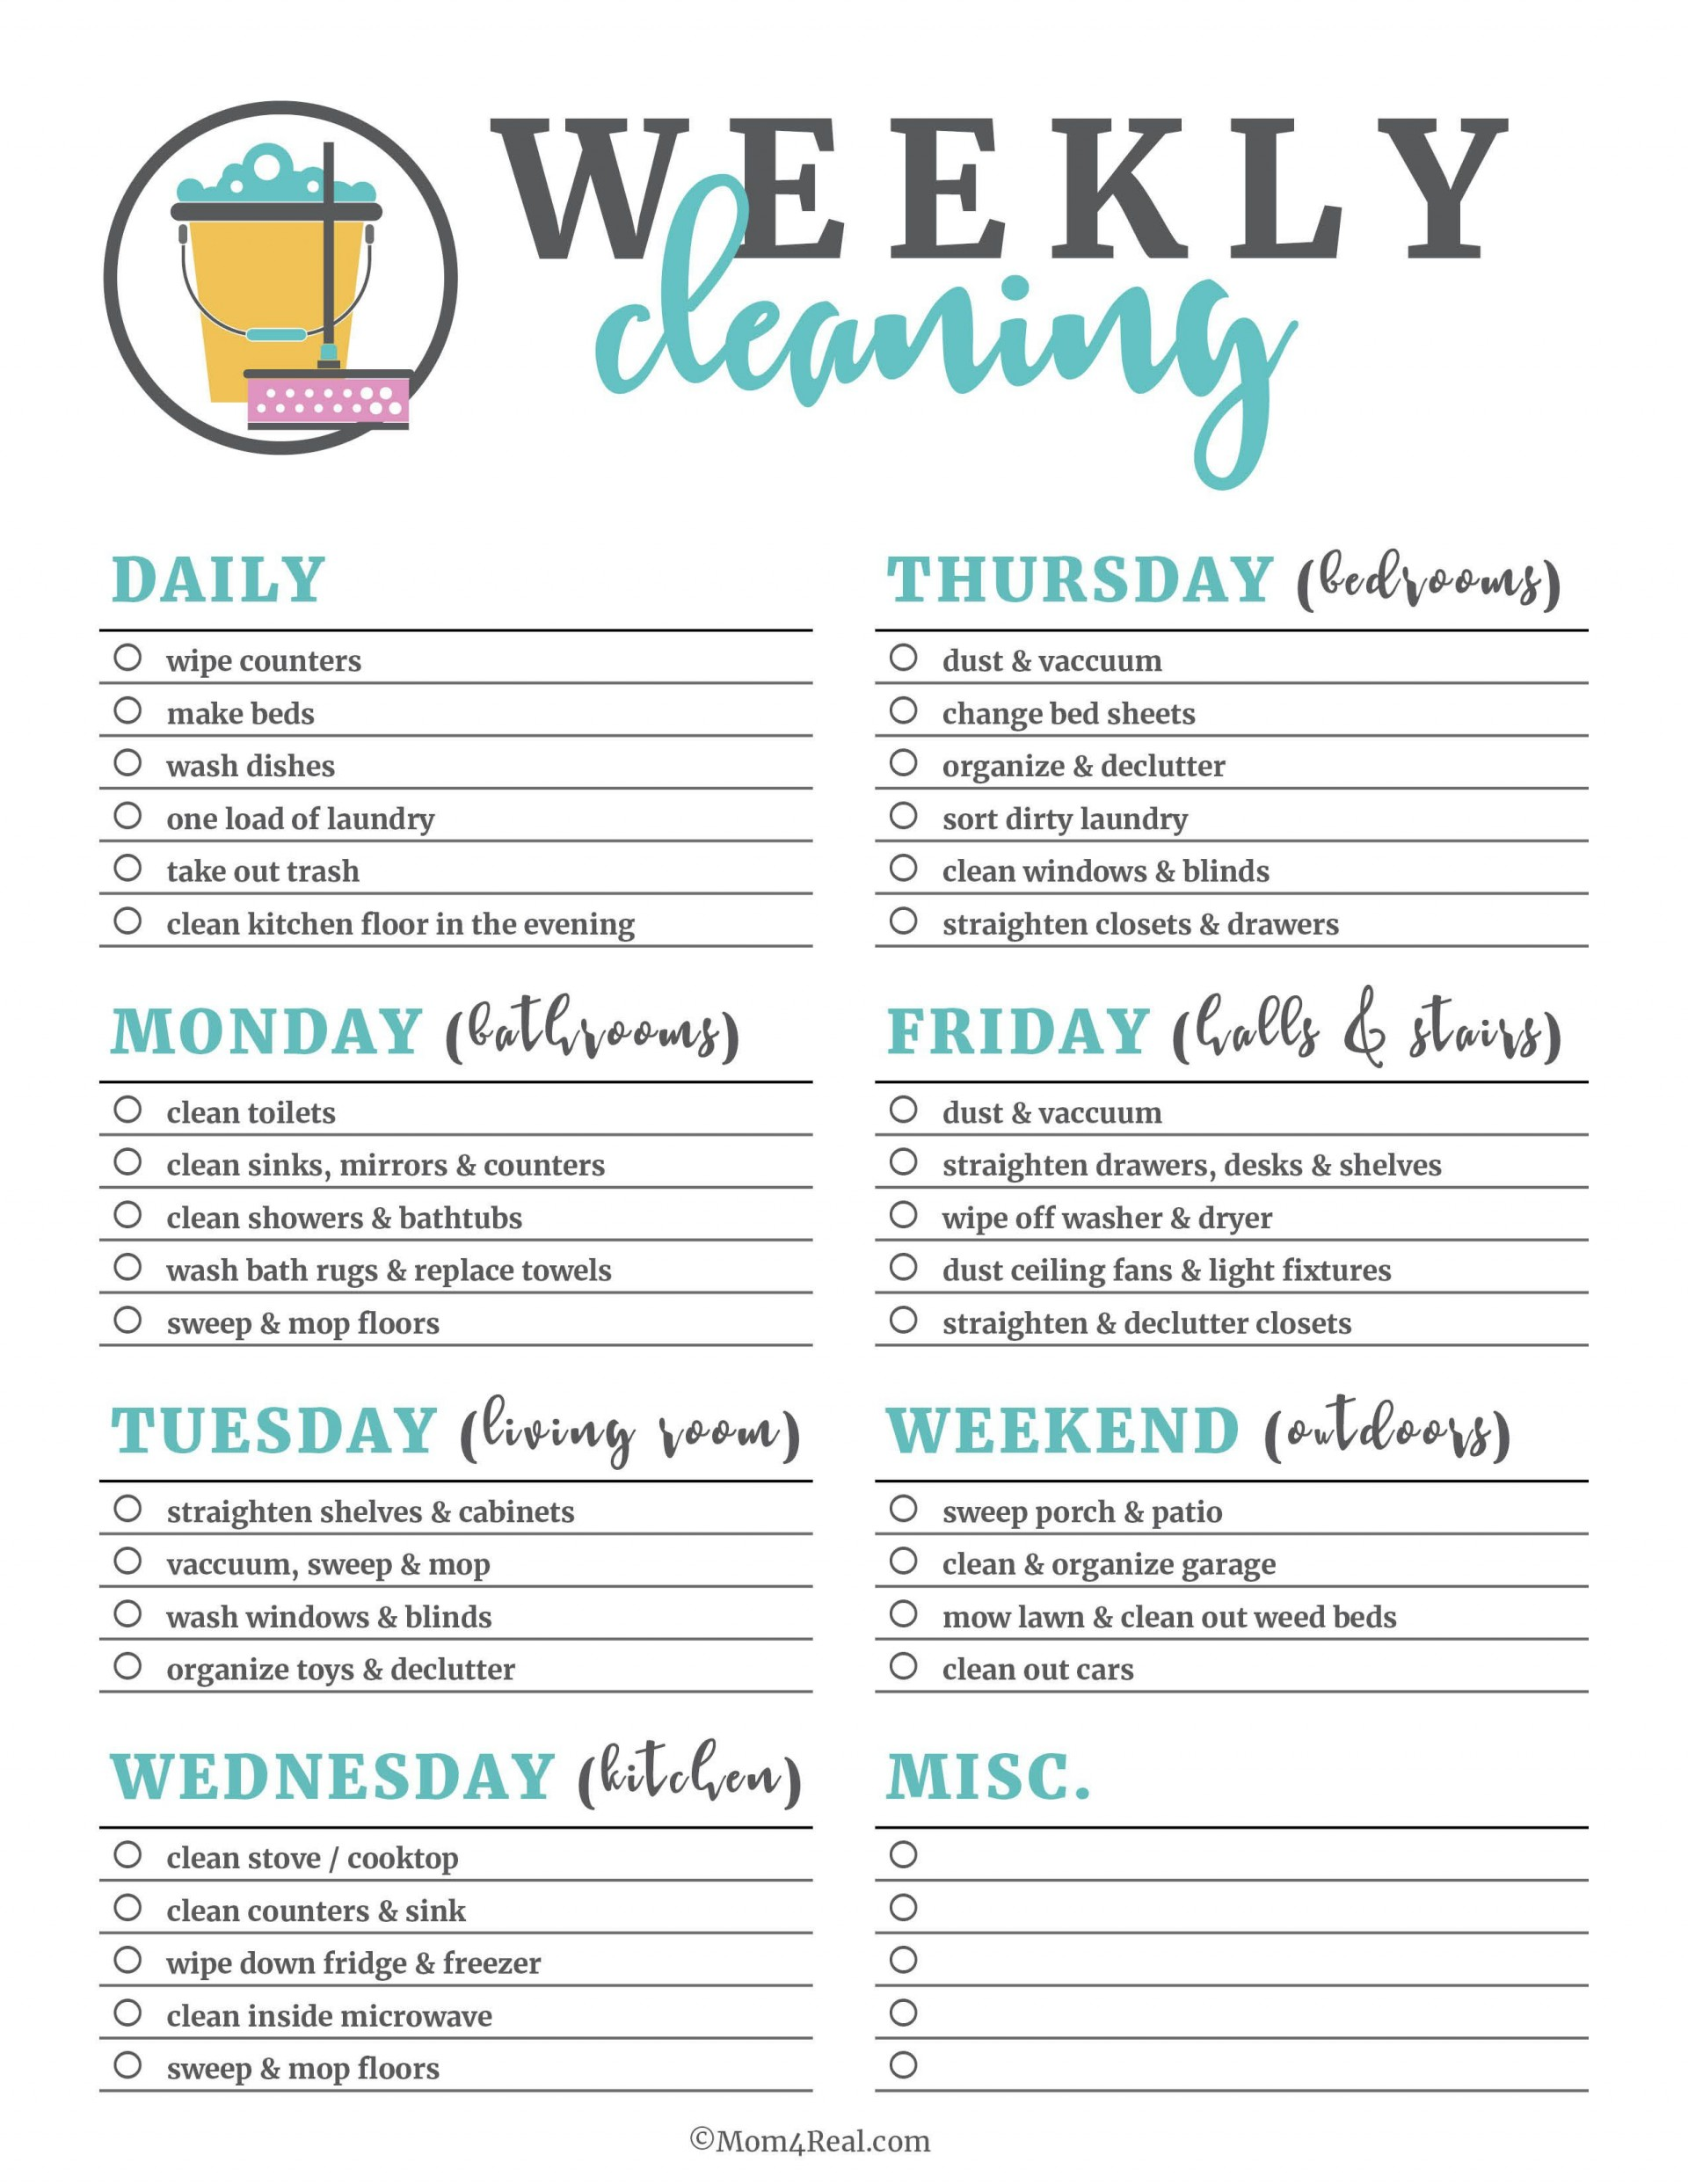 003 Incredible Weekly Cleaning Schedule Format High Definition  Template Free Sample1920